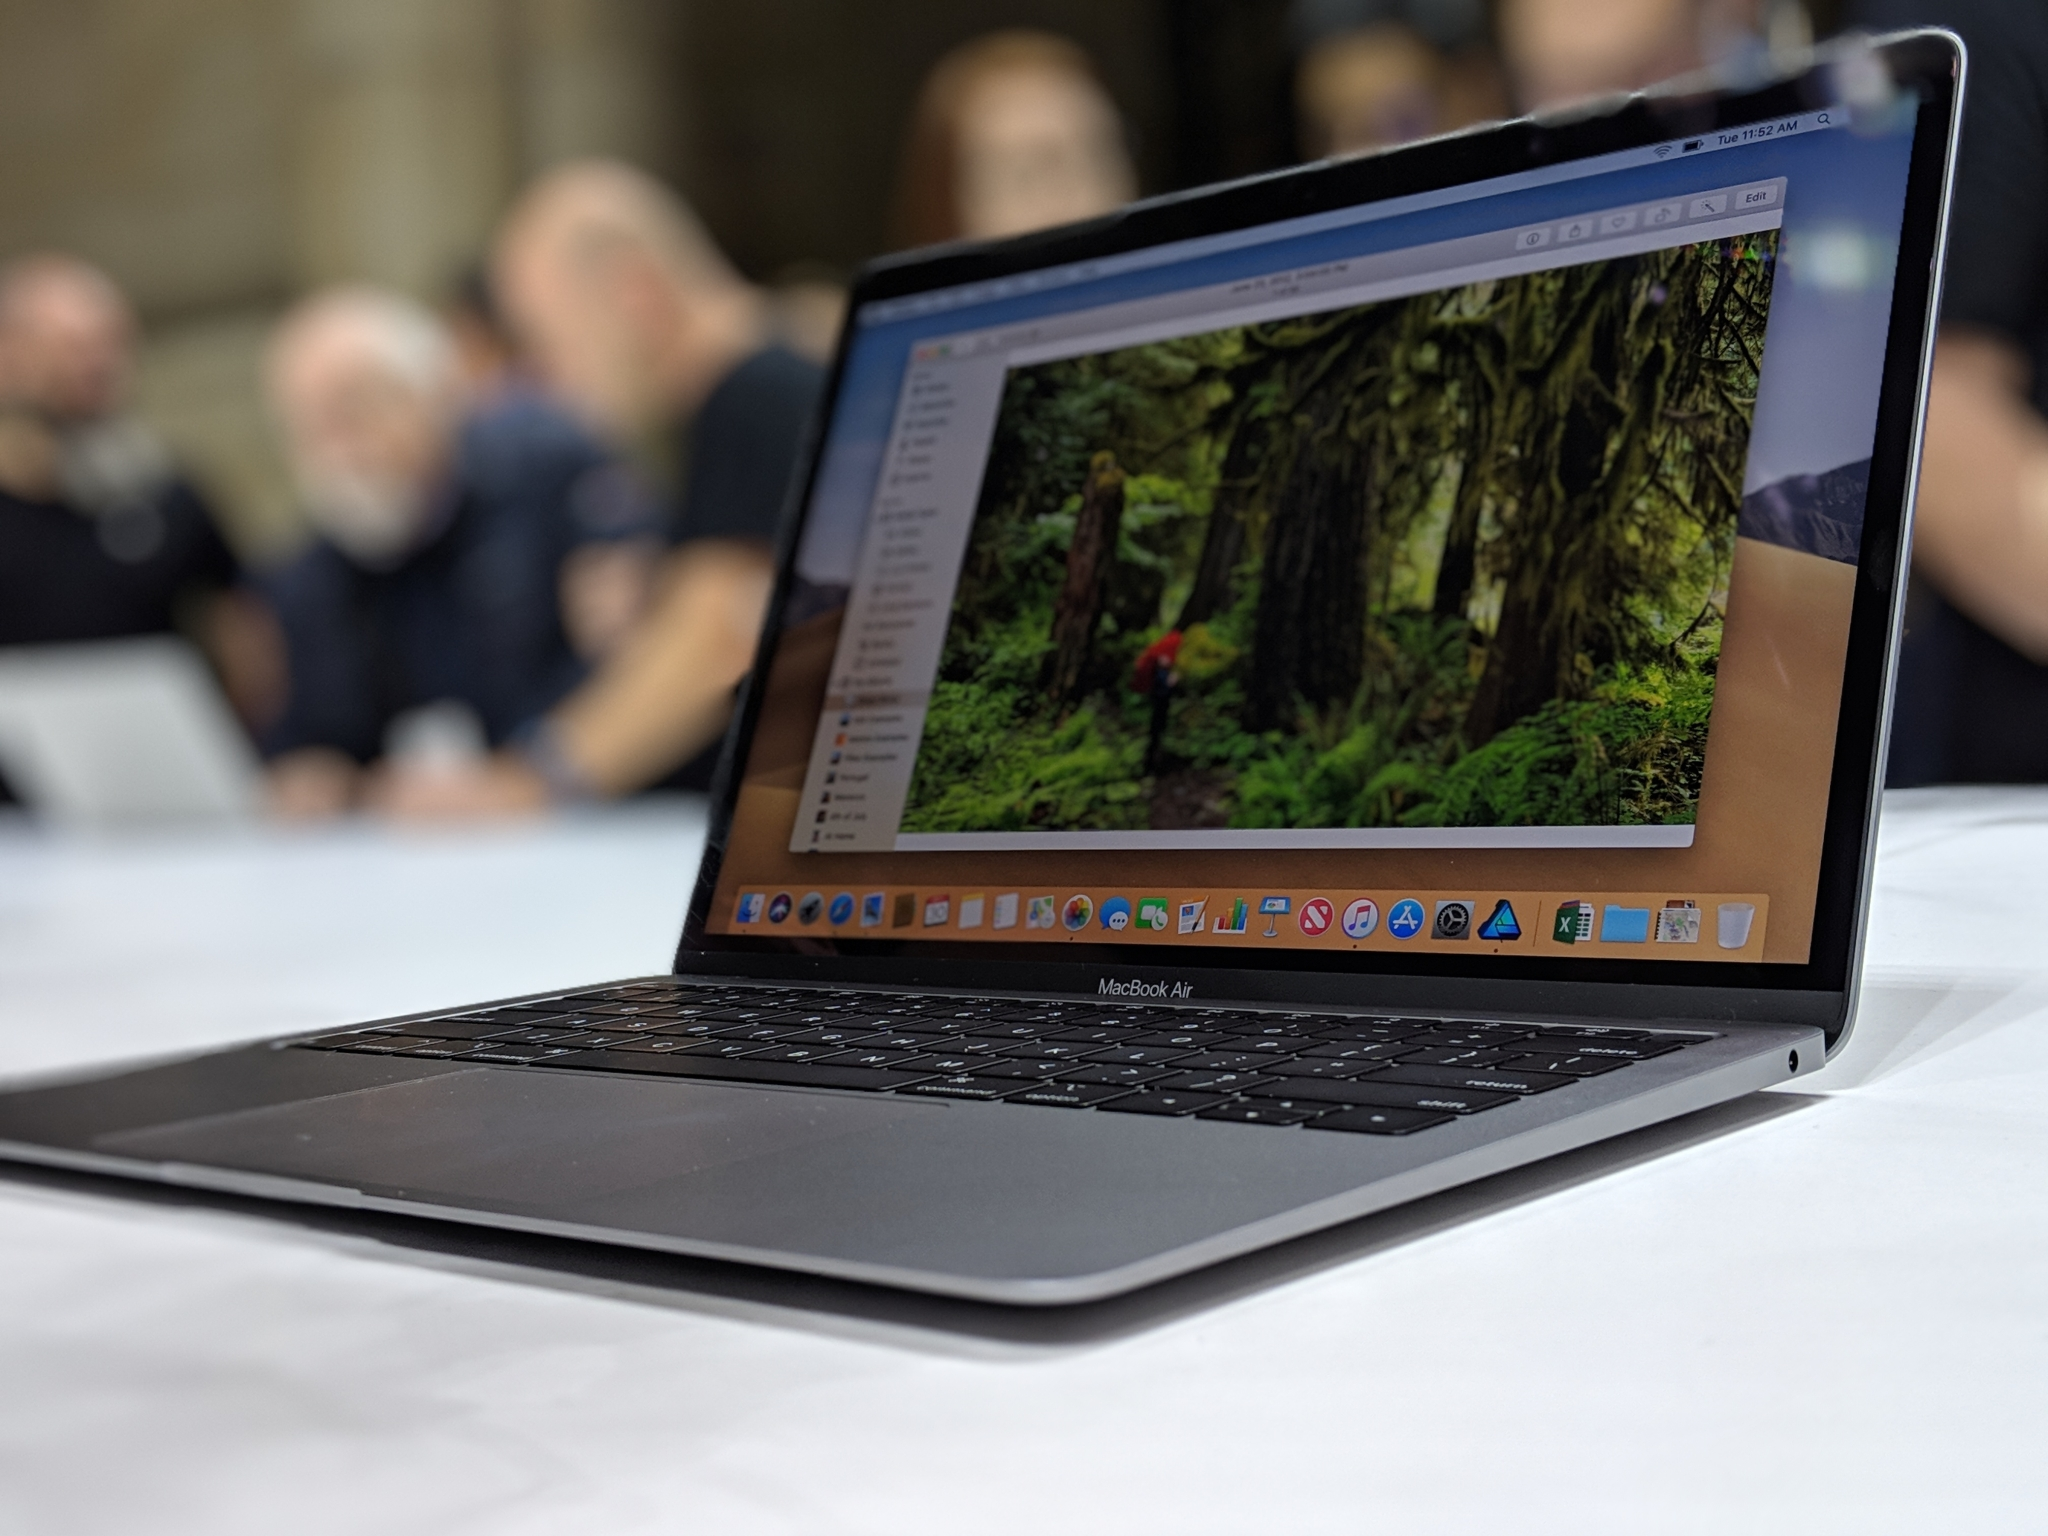 Apple Likely to Launch 16-Inch MacBook Pro, 6K Monitor This Year